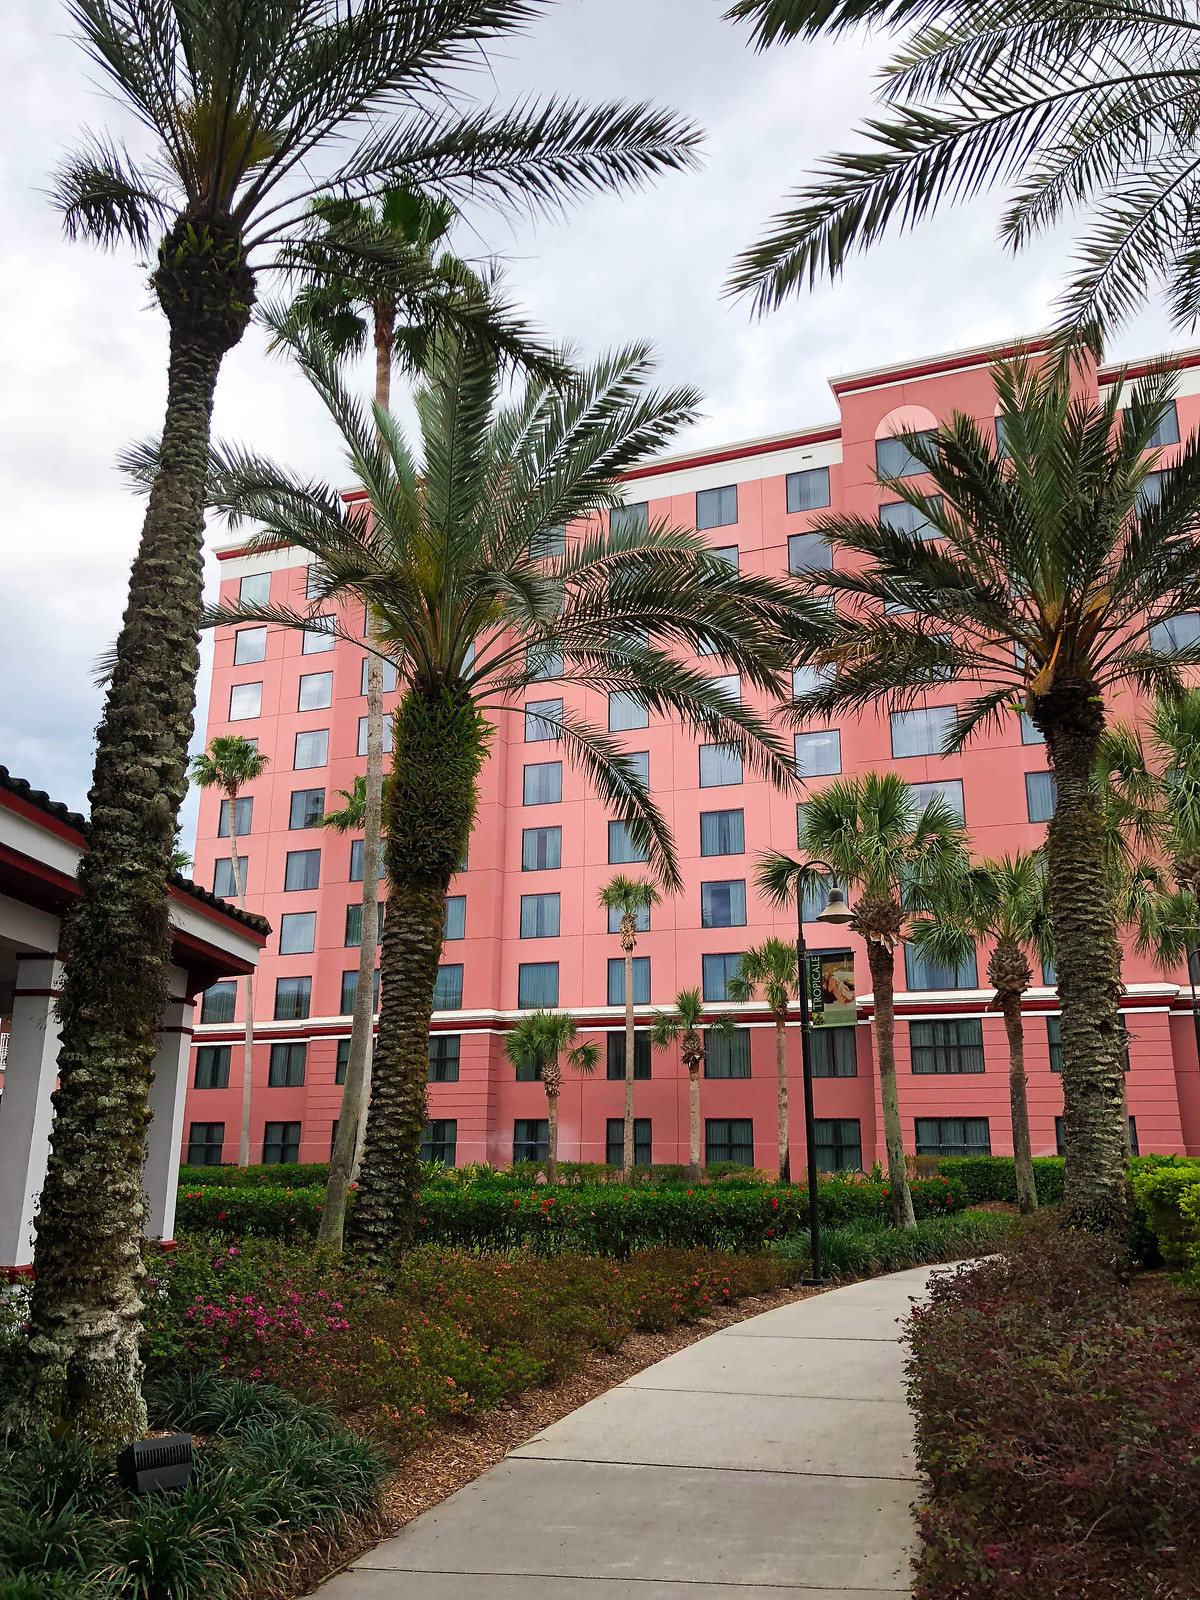 Caribe Royal Orlando Florida Pink Hotel Walt Disney World